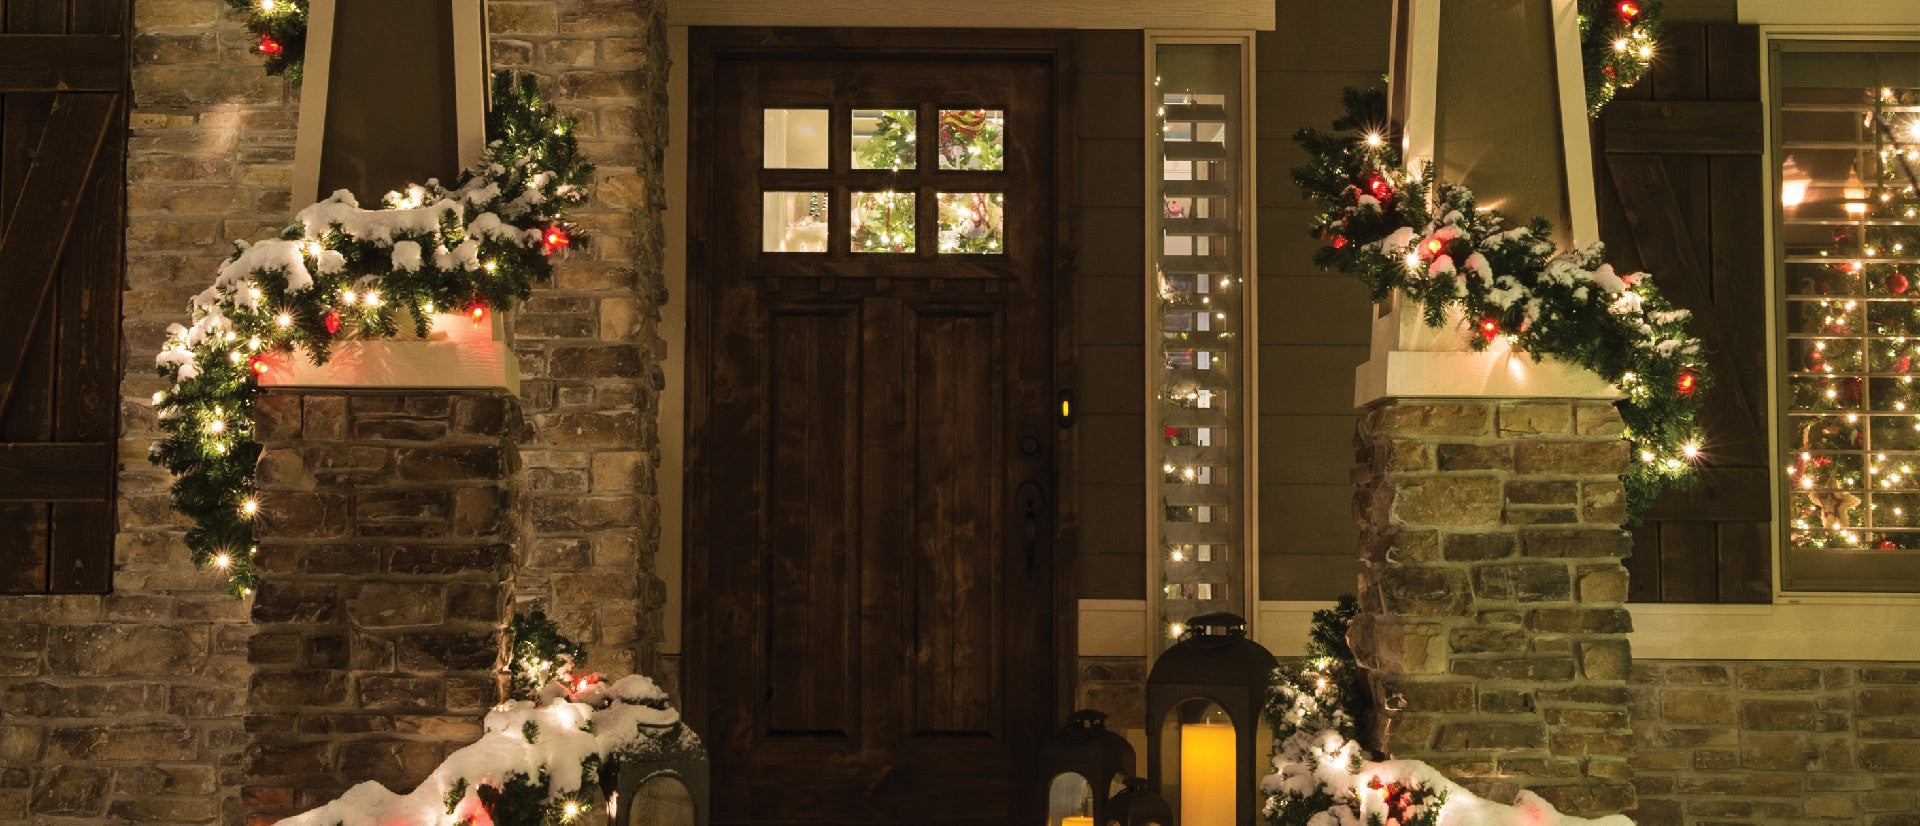 Decorated Garland | Greenery by Village Lighting Company